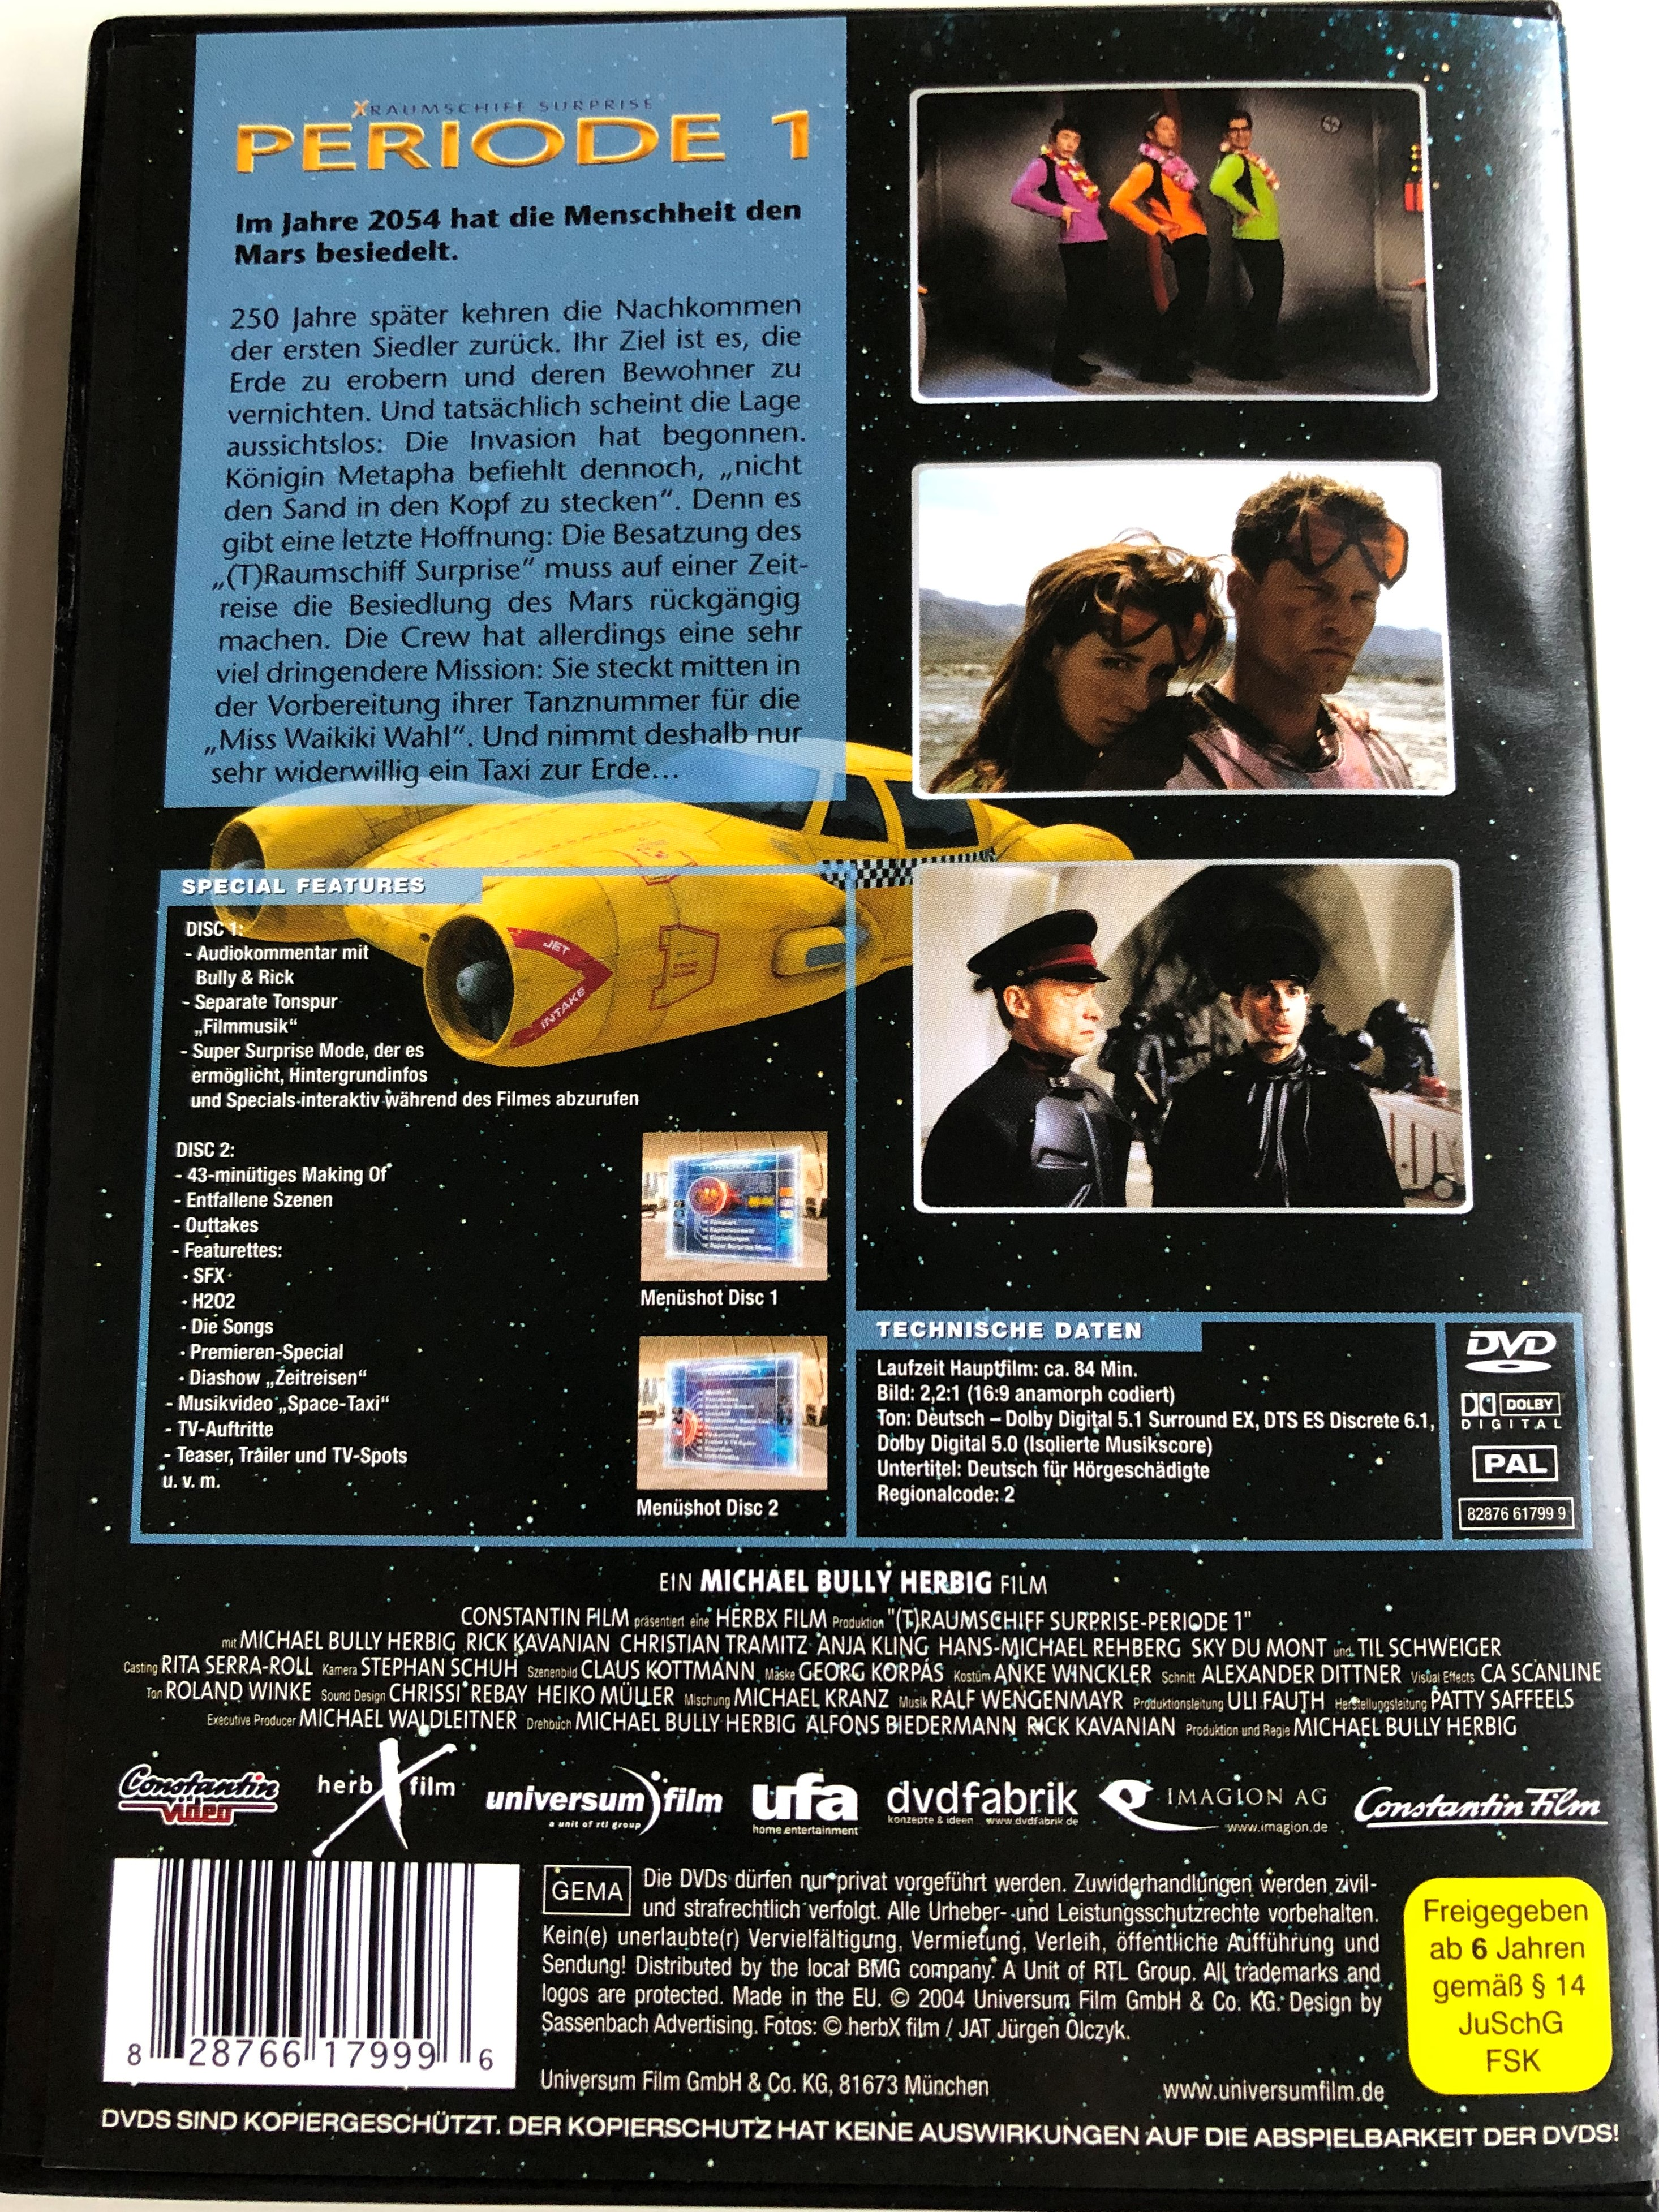 t-raumschiff-surprise-periode-1-dvd-2004-directed-by-michael-bully-herbig-3.jpg